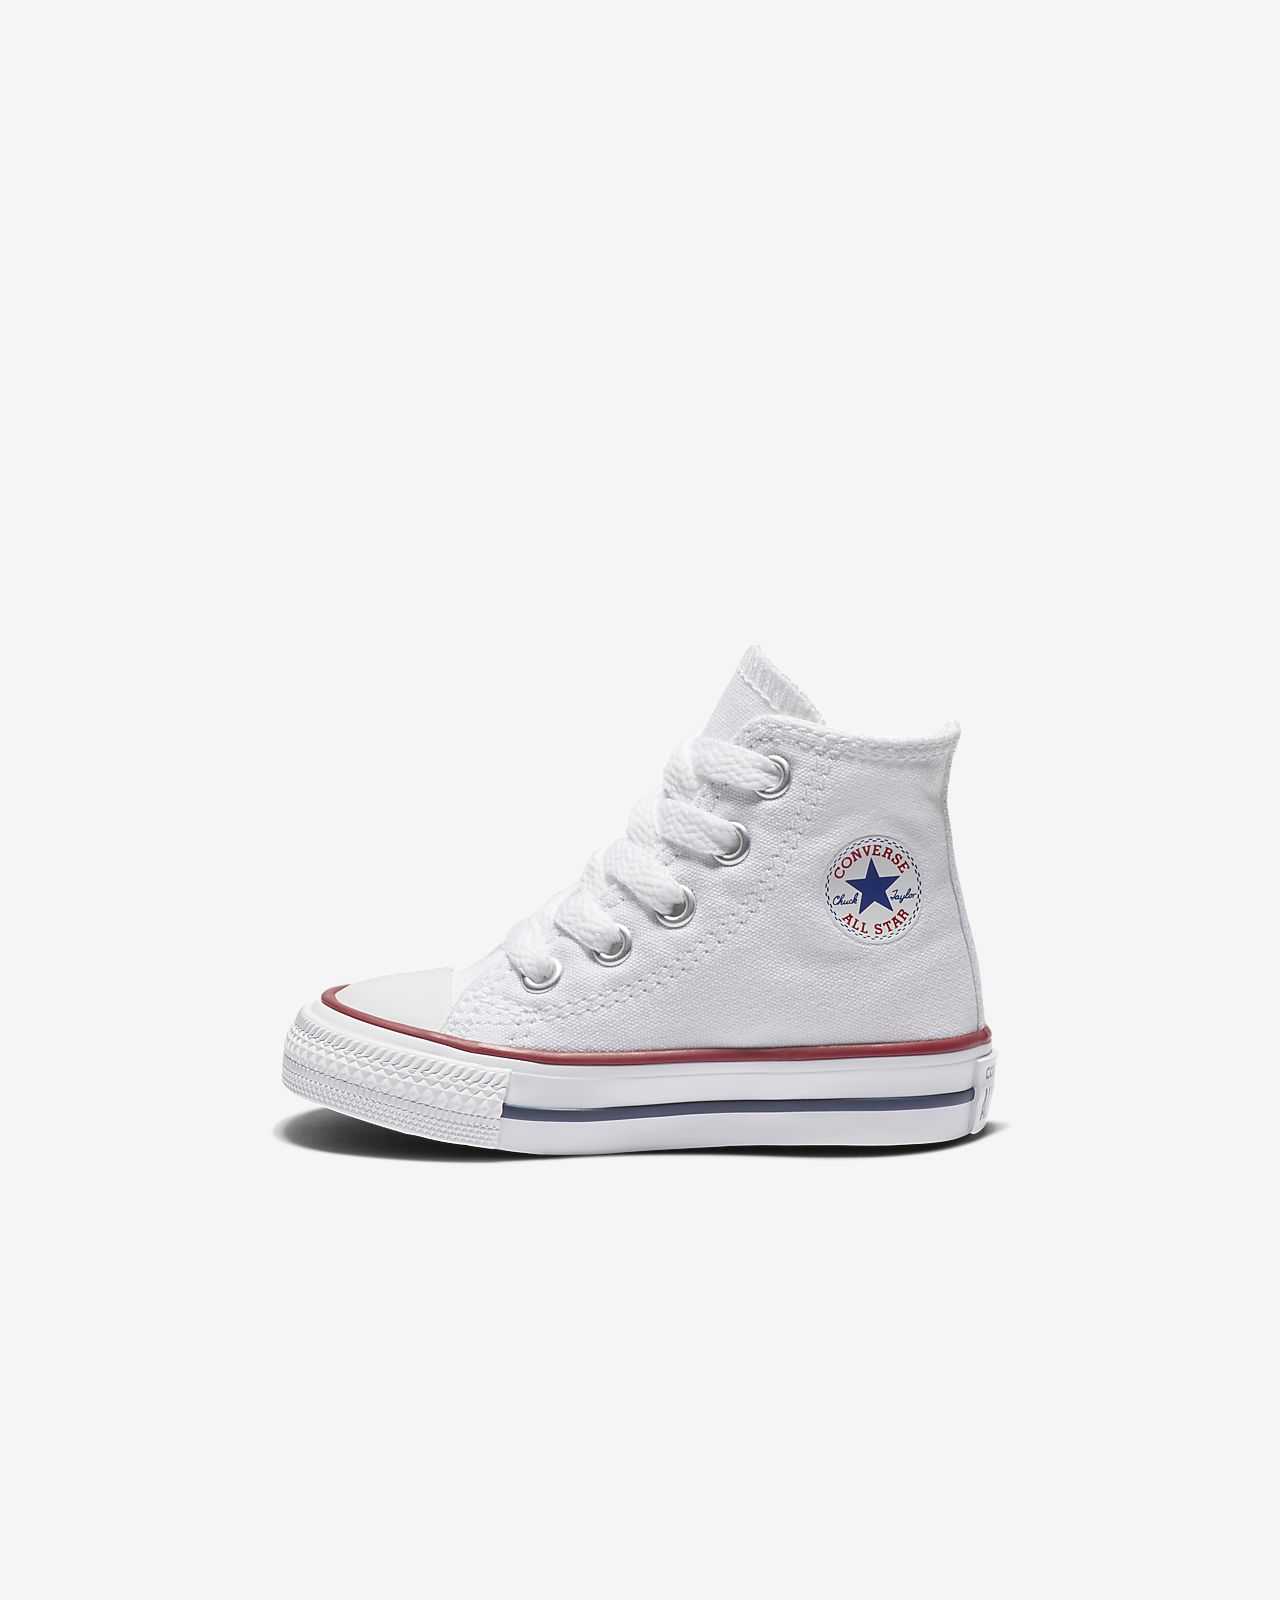 88216c980d8a Converse Chuck Taylor All Star High Top (2c-10c) Infant Toddler Shoe ...